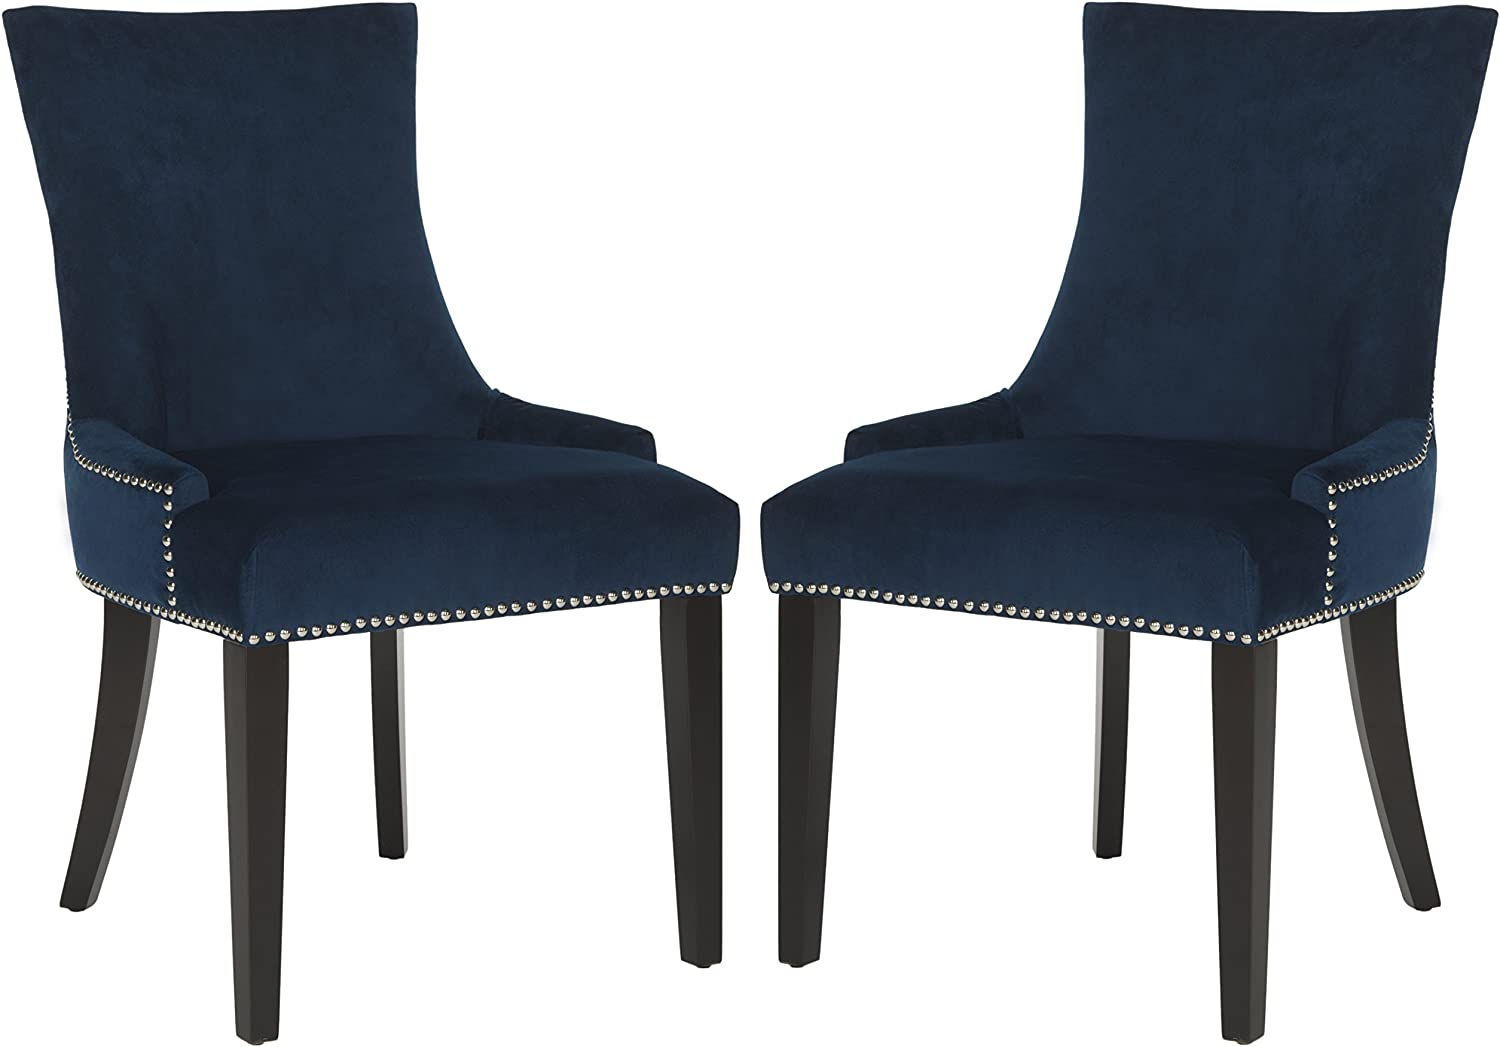 Safavieh Mercer Collection Lester Navy/Espresso Dining Chair (Set of 2), Grey/White